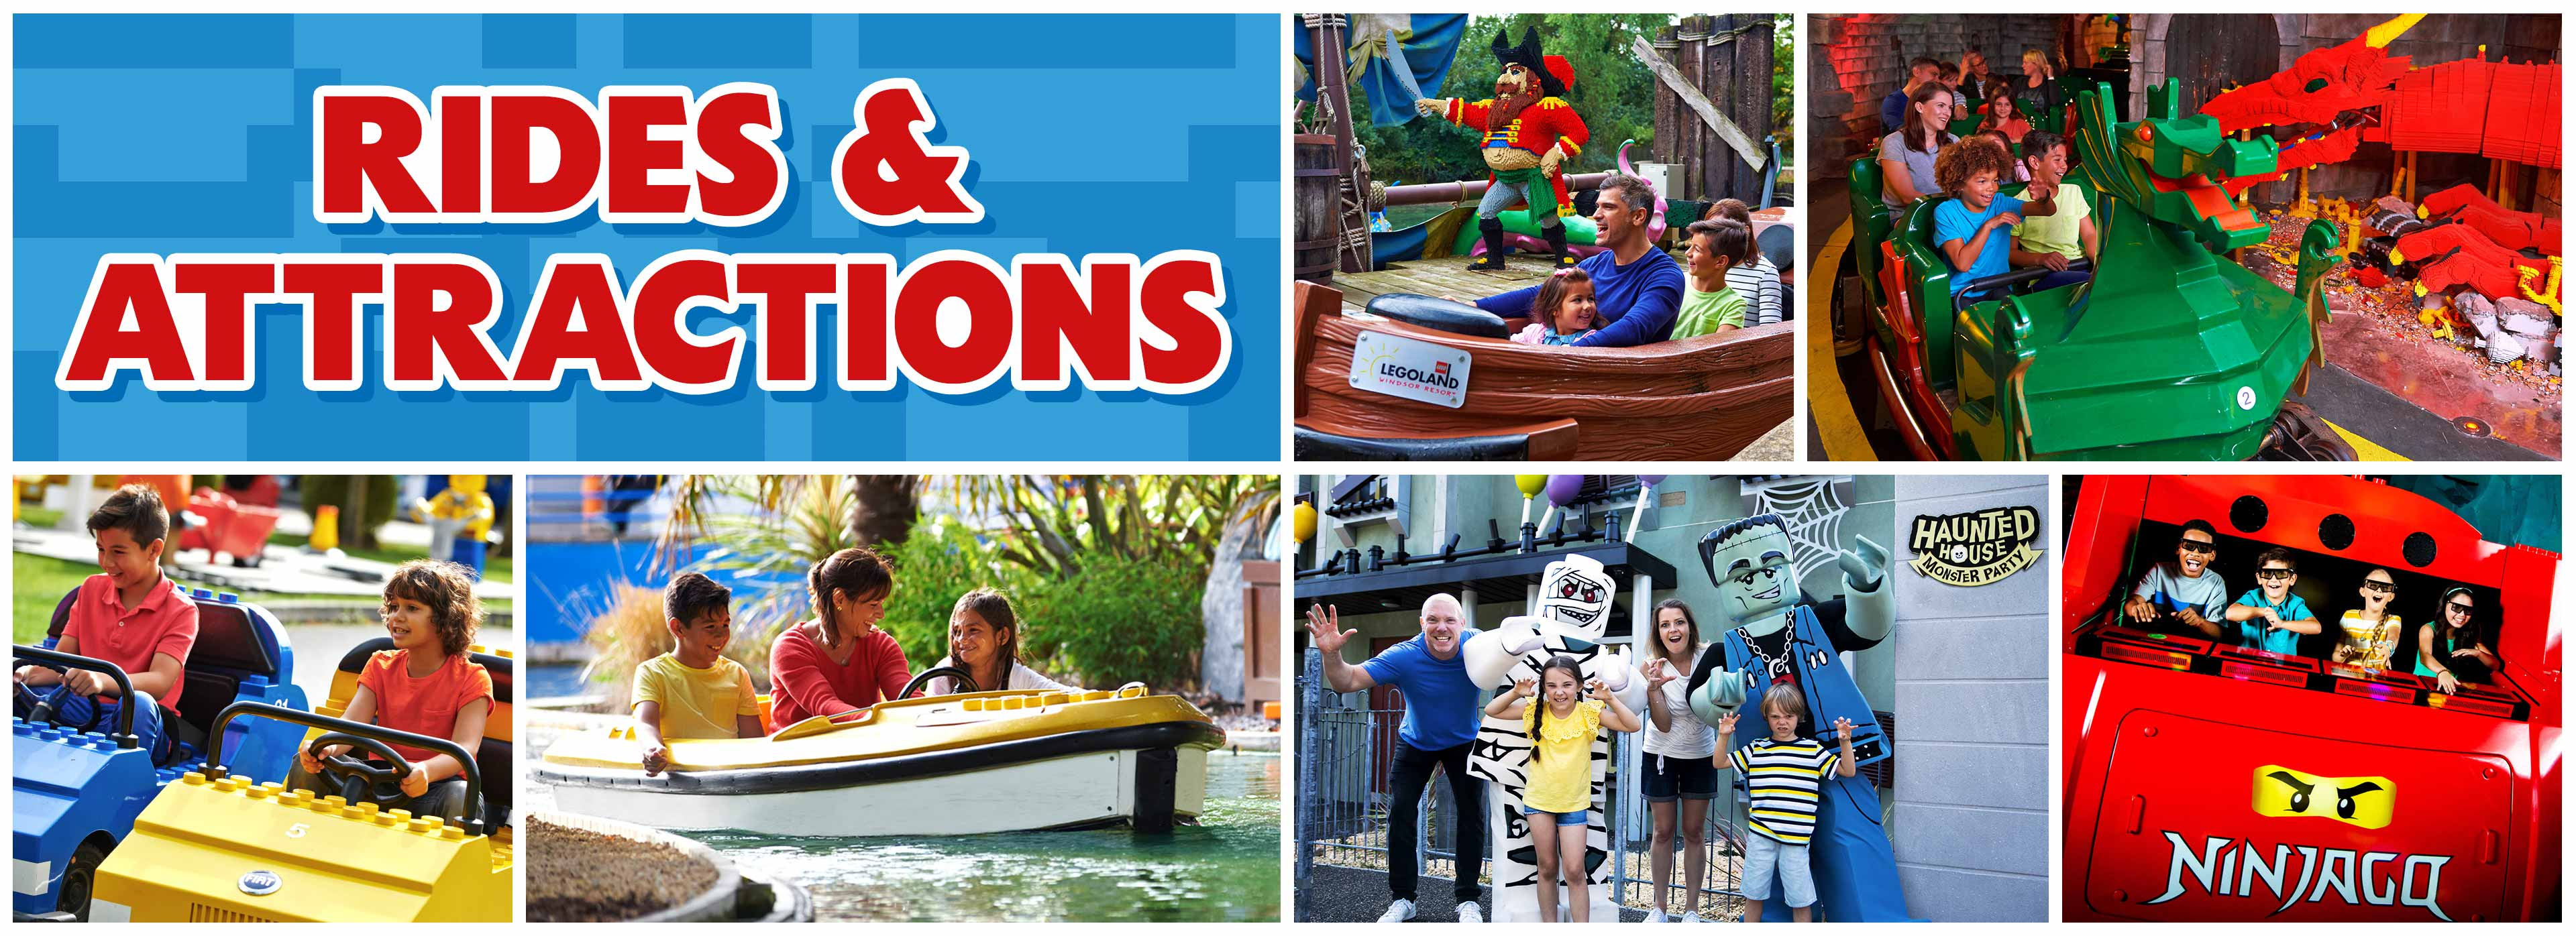 Rides and attractions at LEGOLAND® Windsor Resort